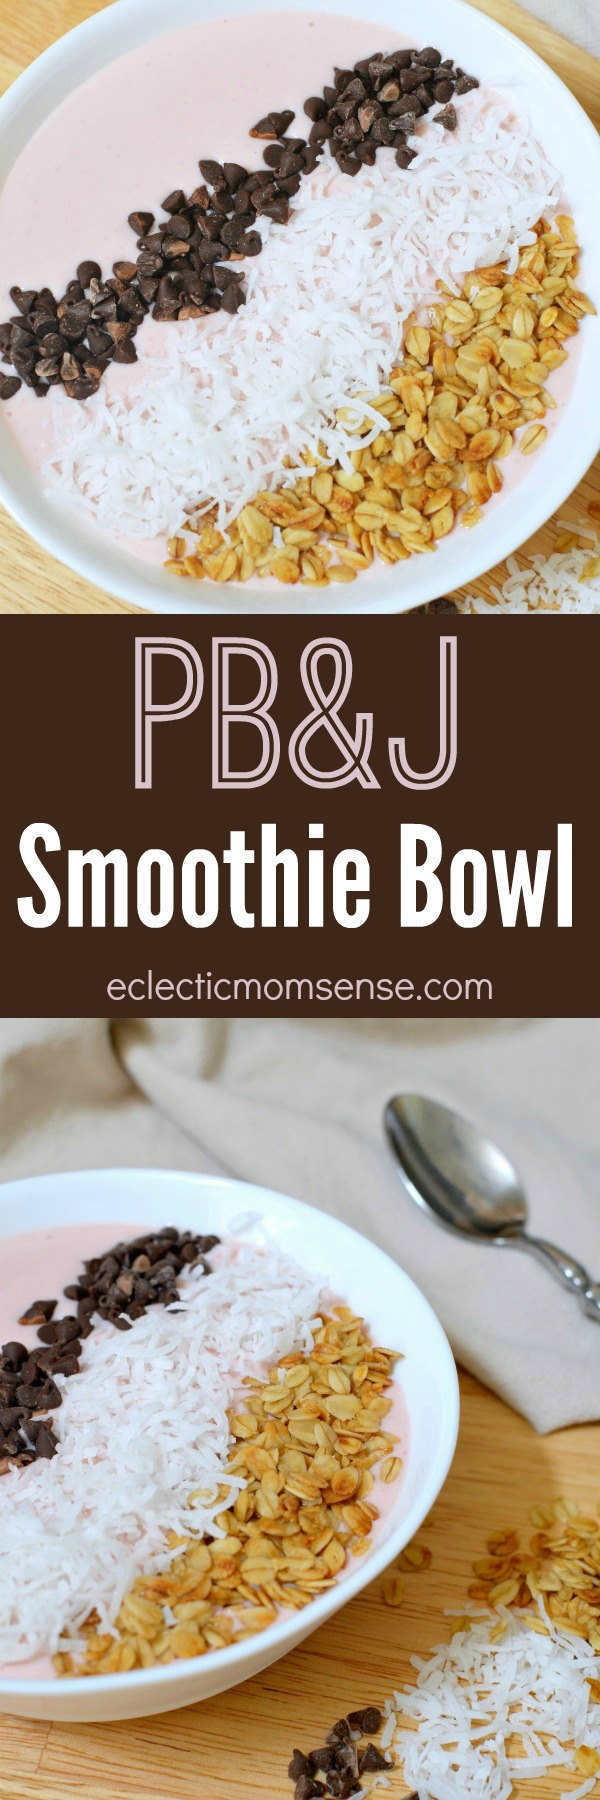 PB&J Smoothie Bowl. Creamy peanut butter with a hint of fruity sweetness.